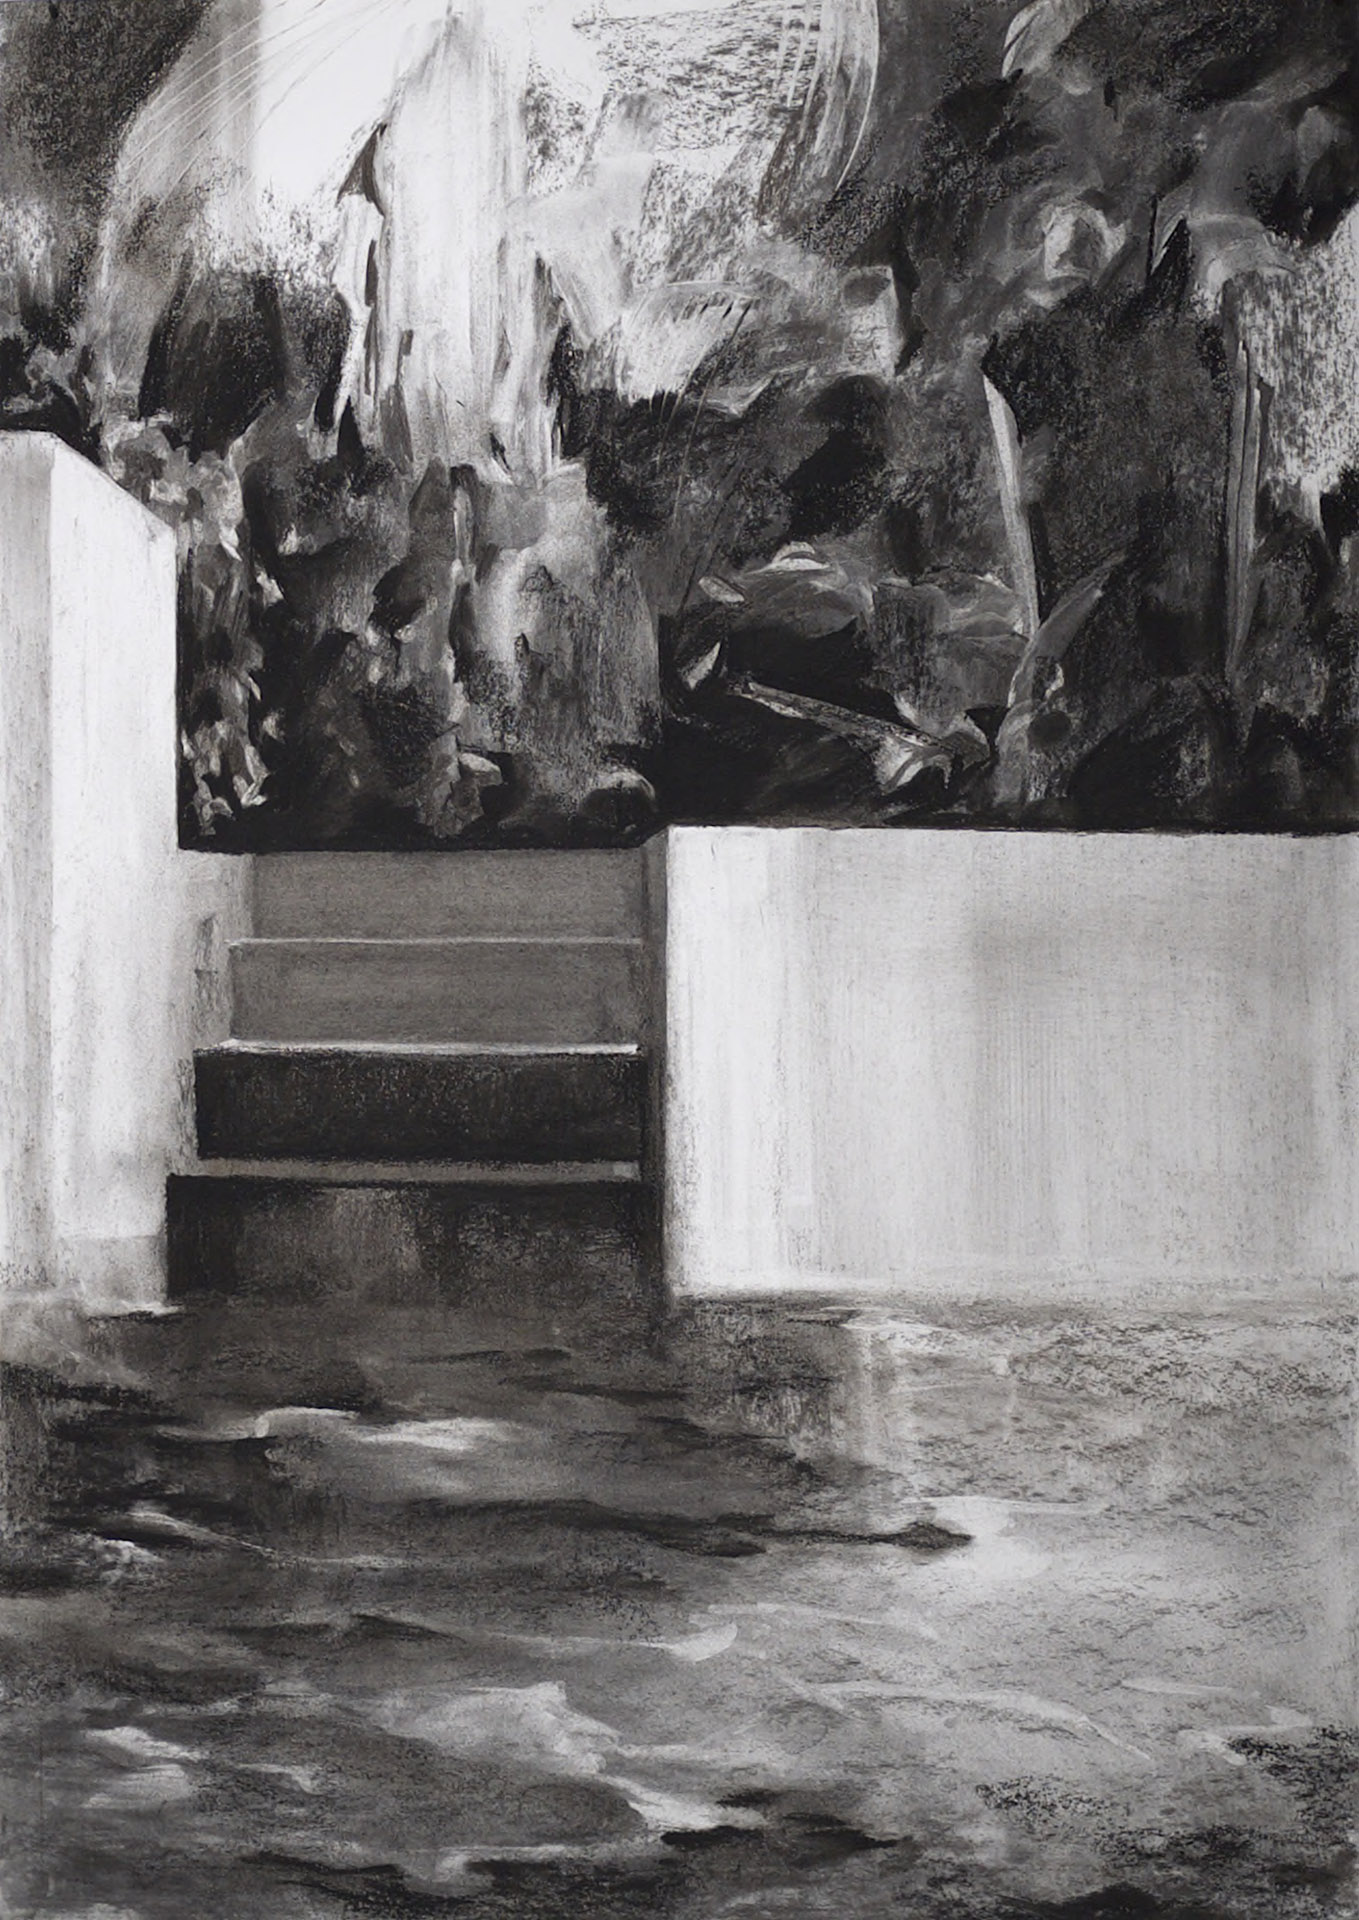 Study for Private Paradise, 2015, charcoal on paper, 84 x 59cm (private collection)